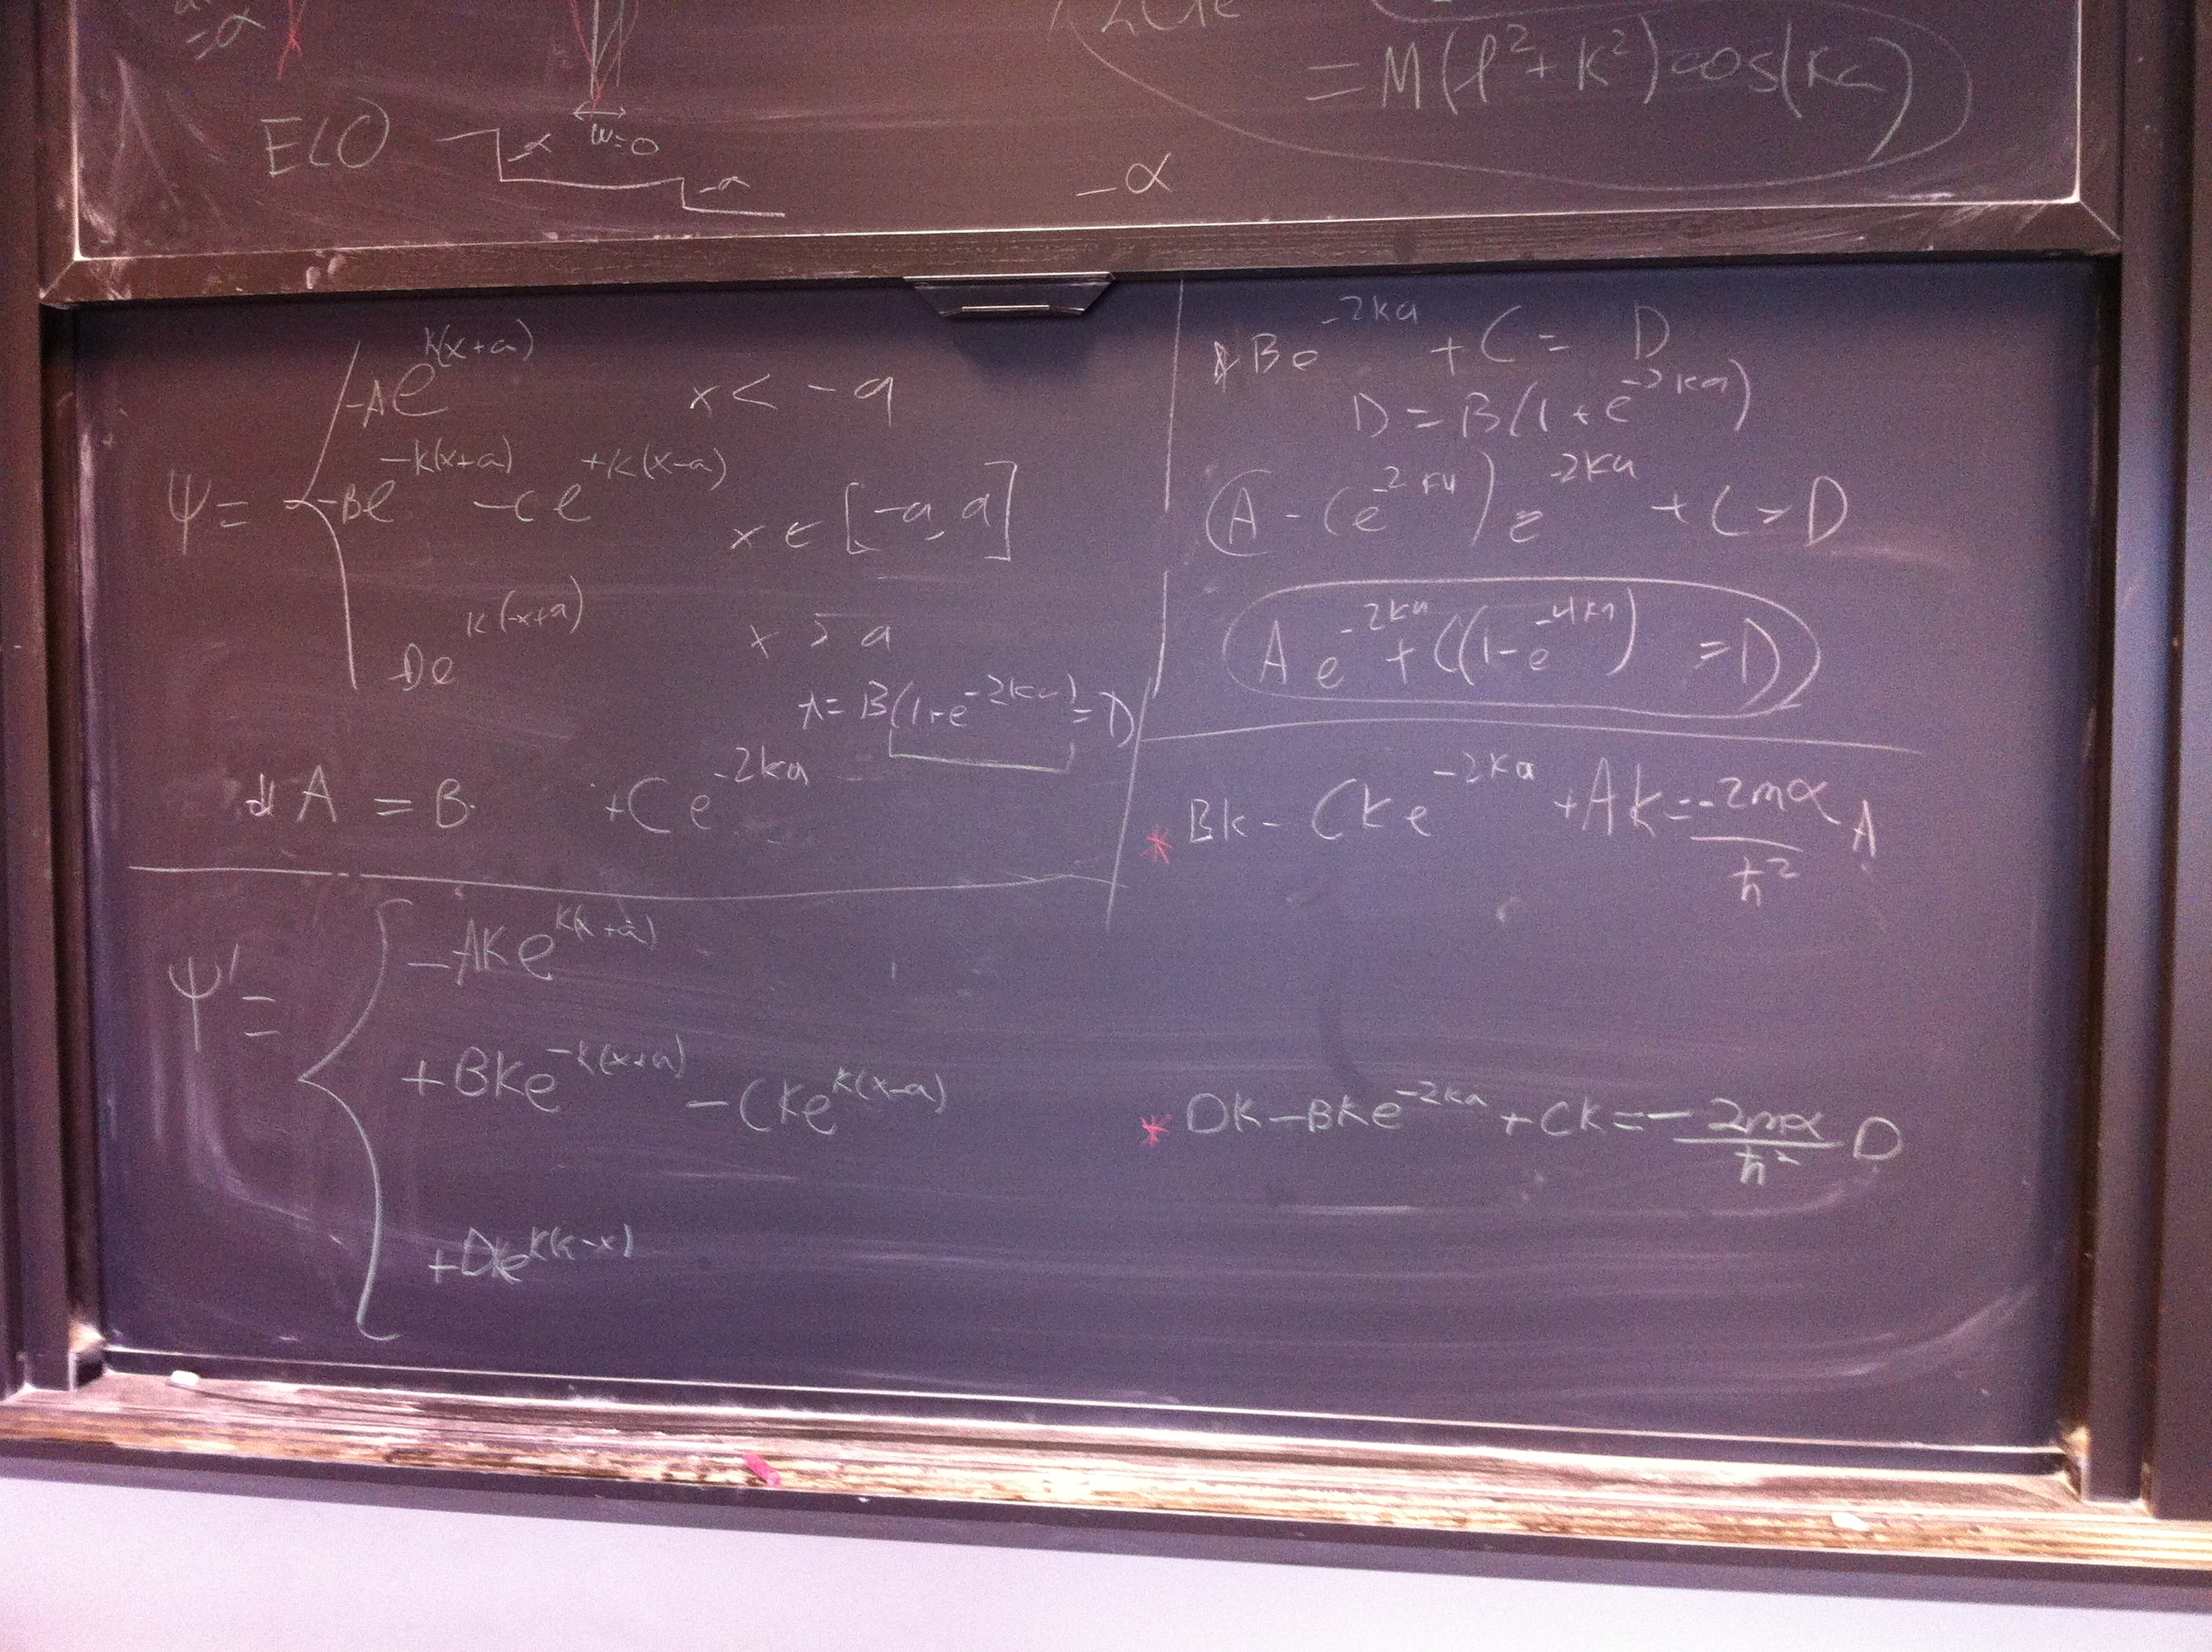 A blackboard with more equations